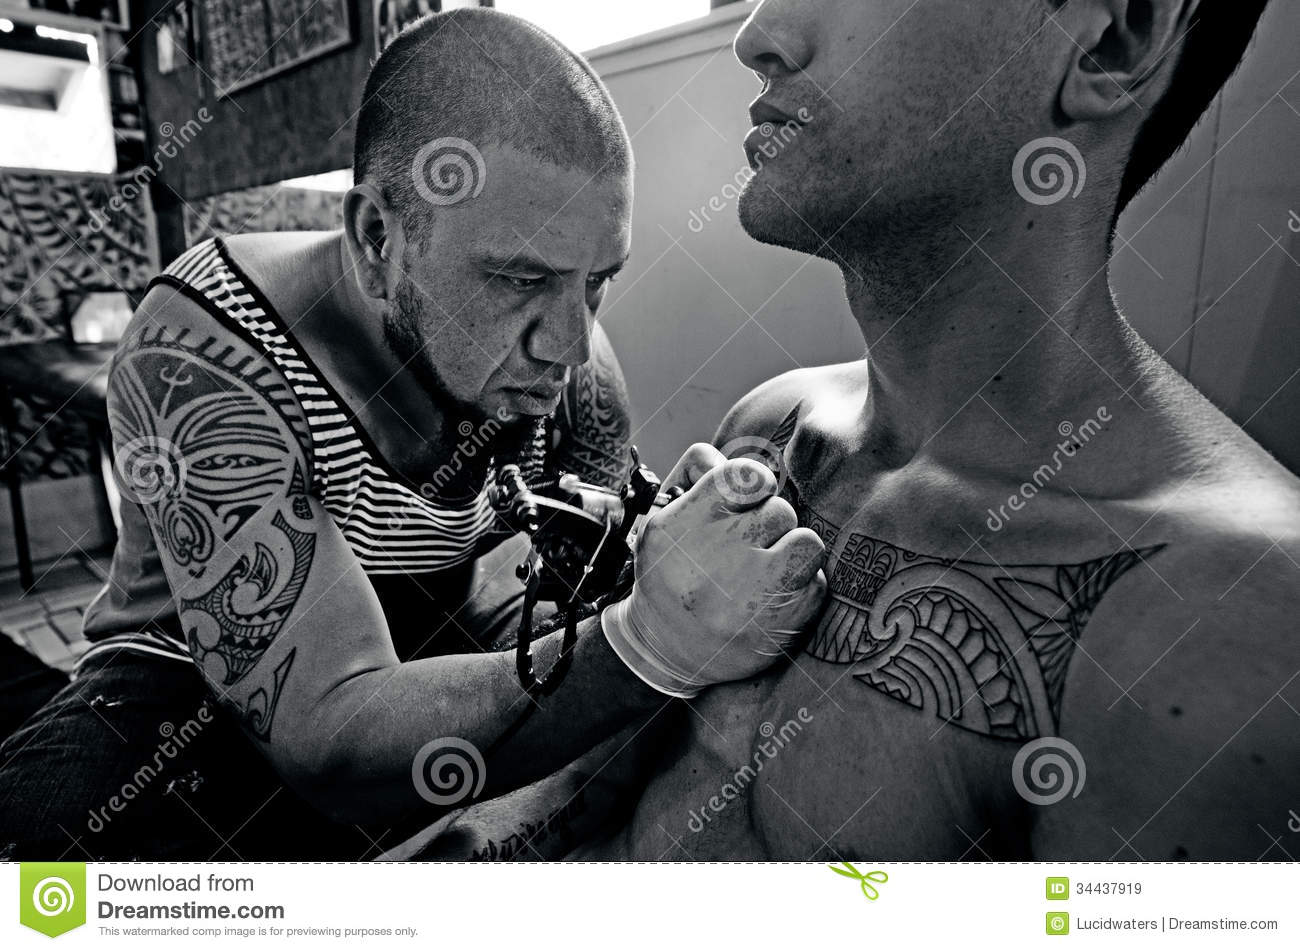 Pacific Island male tattoo artist draws a design on a chest of a young